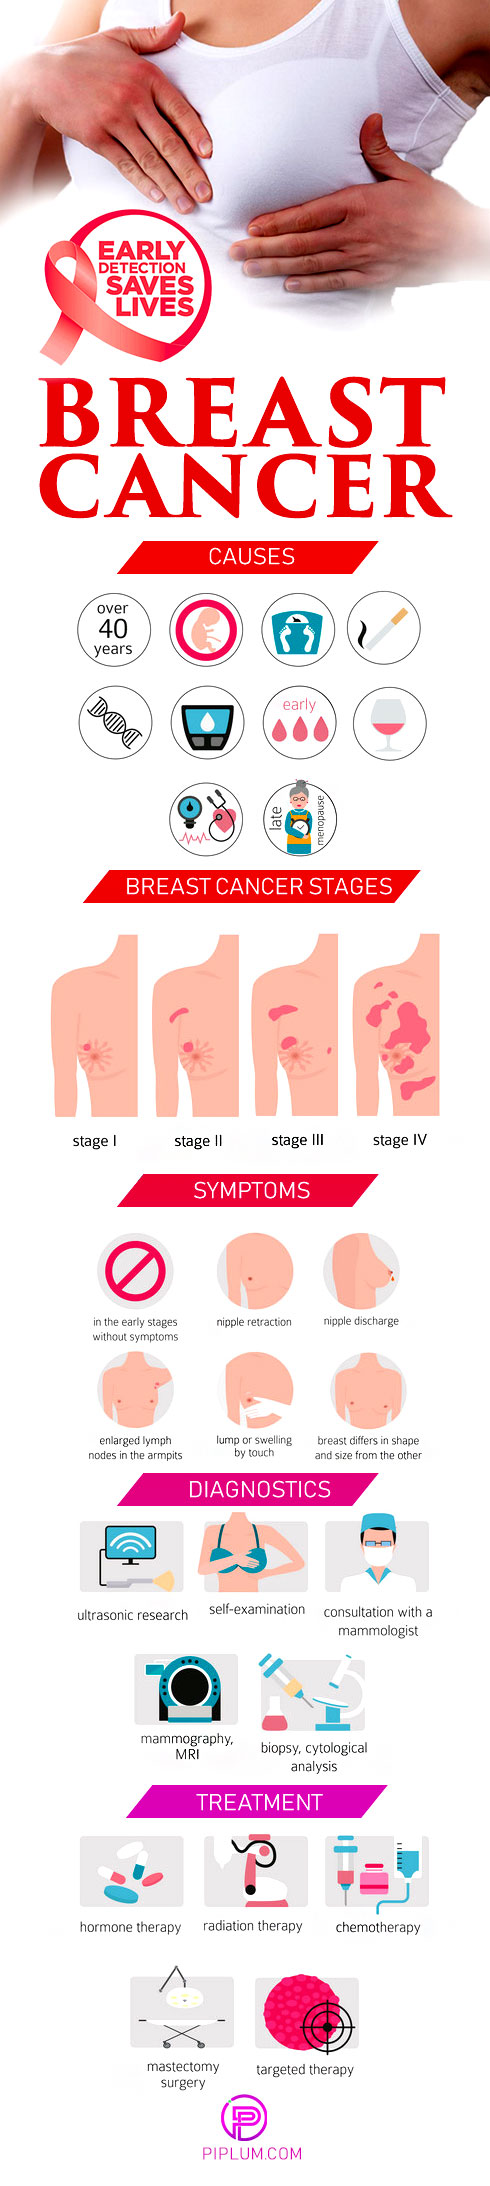 How-to-detect-breast-cancer-symptoms-treatment-diagnostics-causes